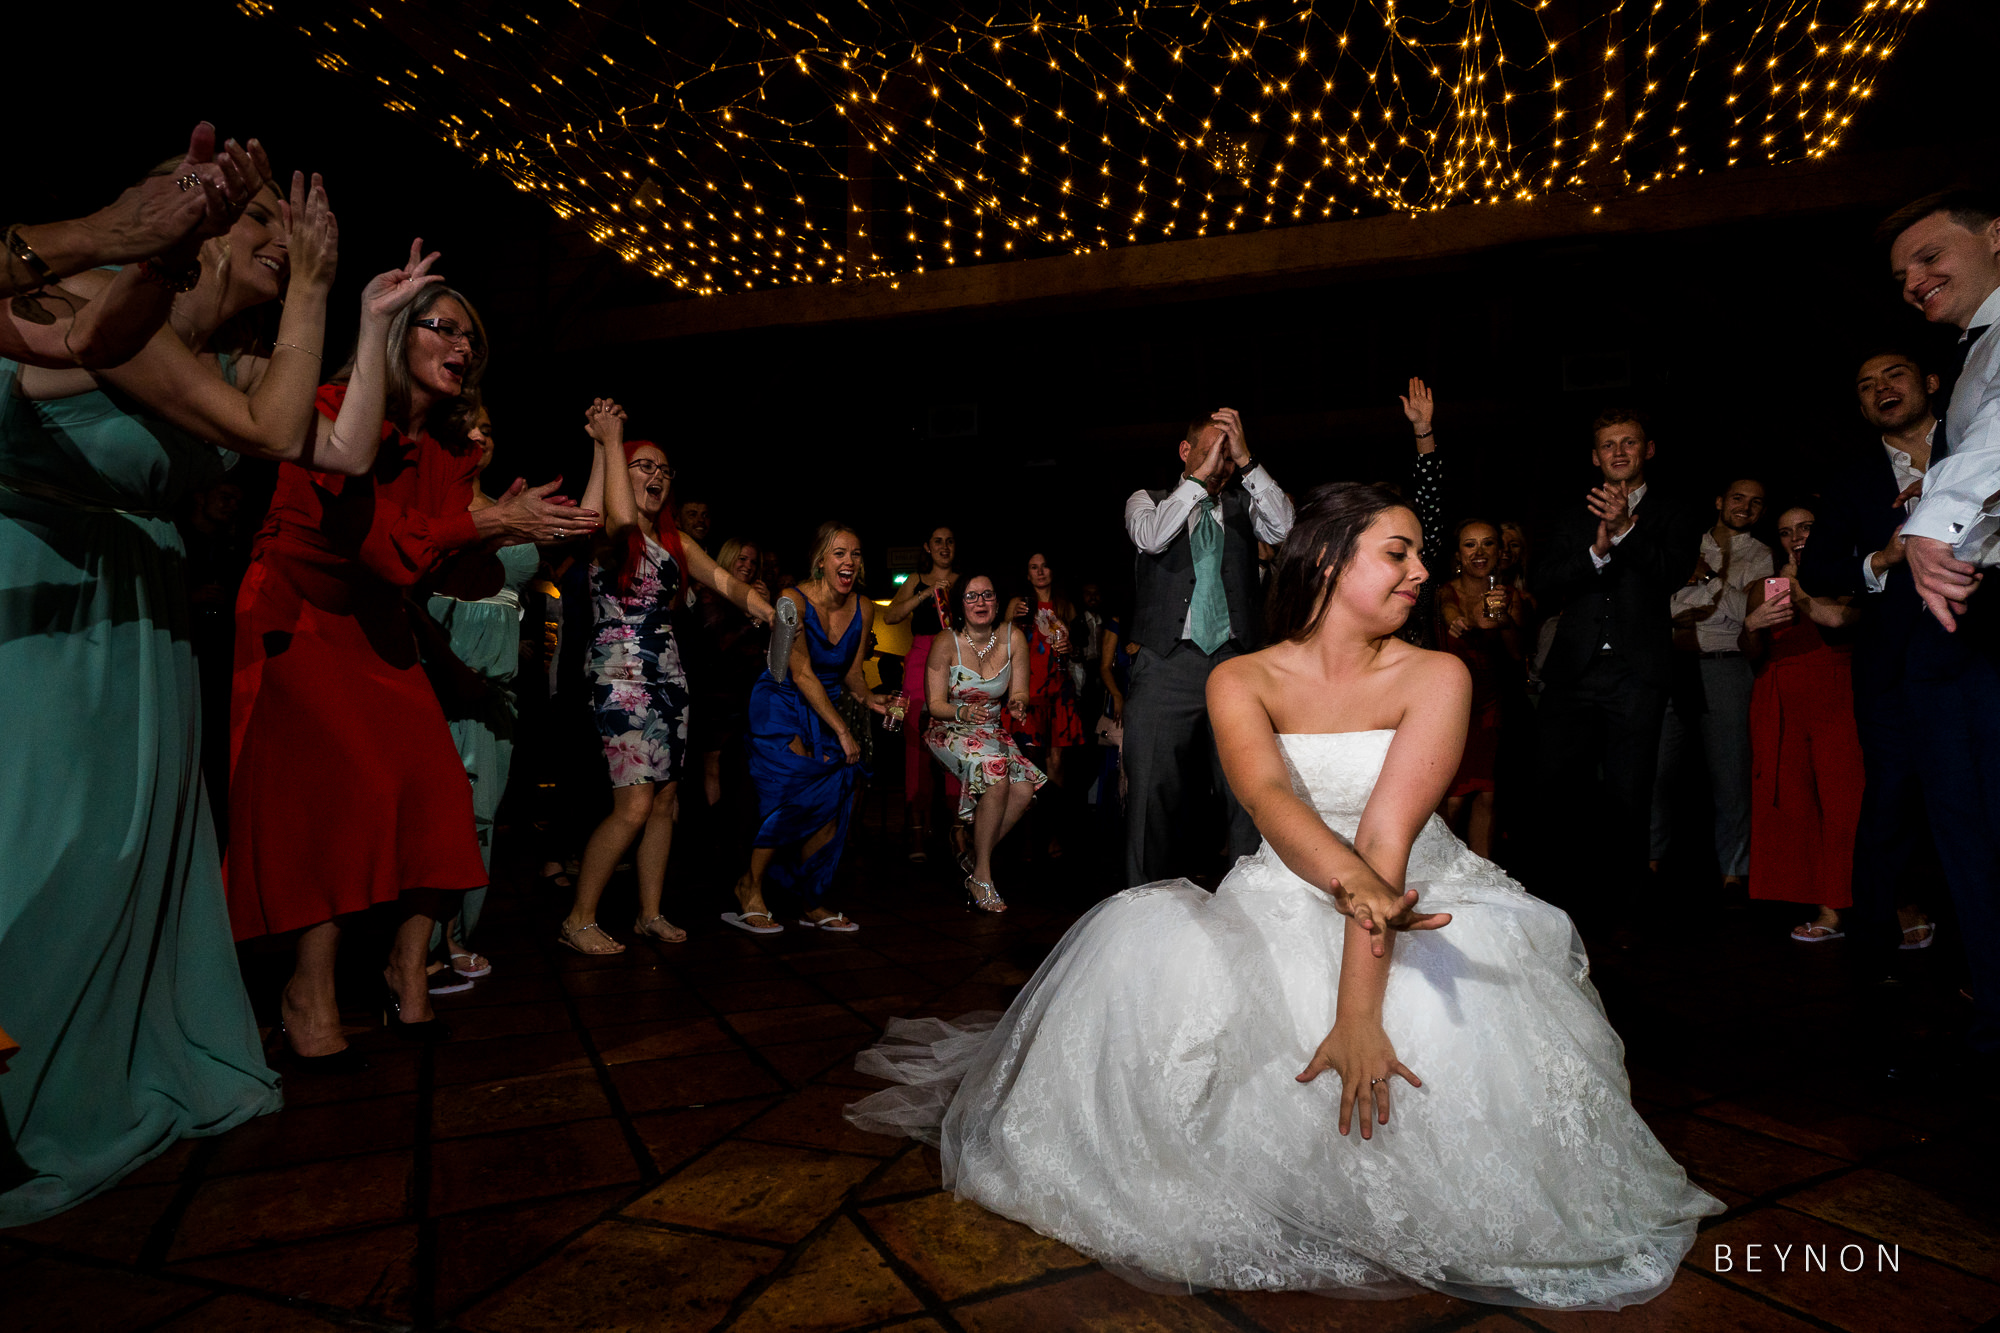 Bride dancing during evening recpetion